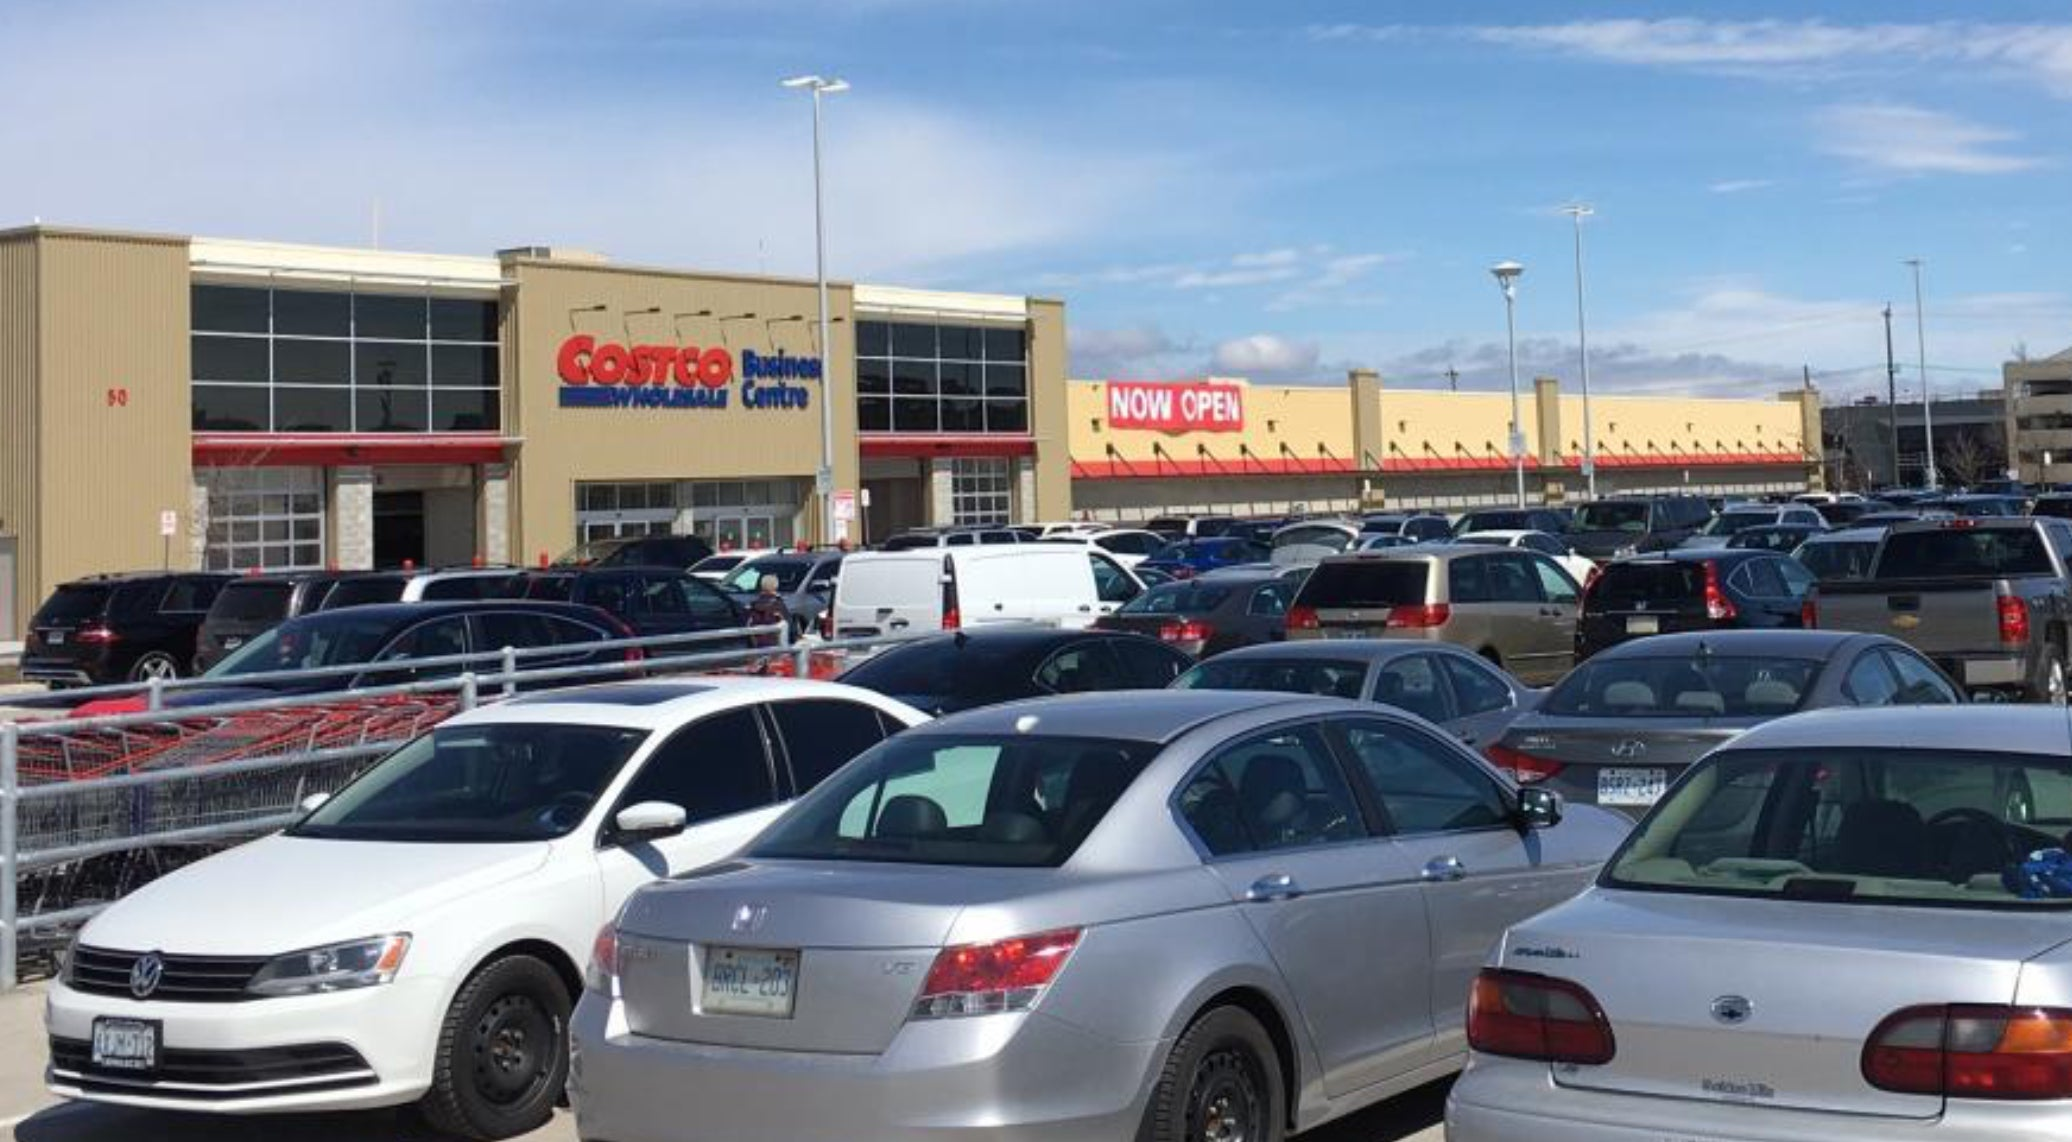 The parking lot a Costco store